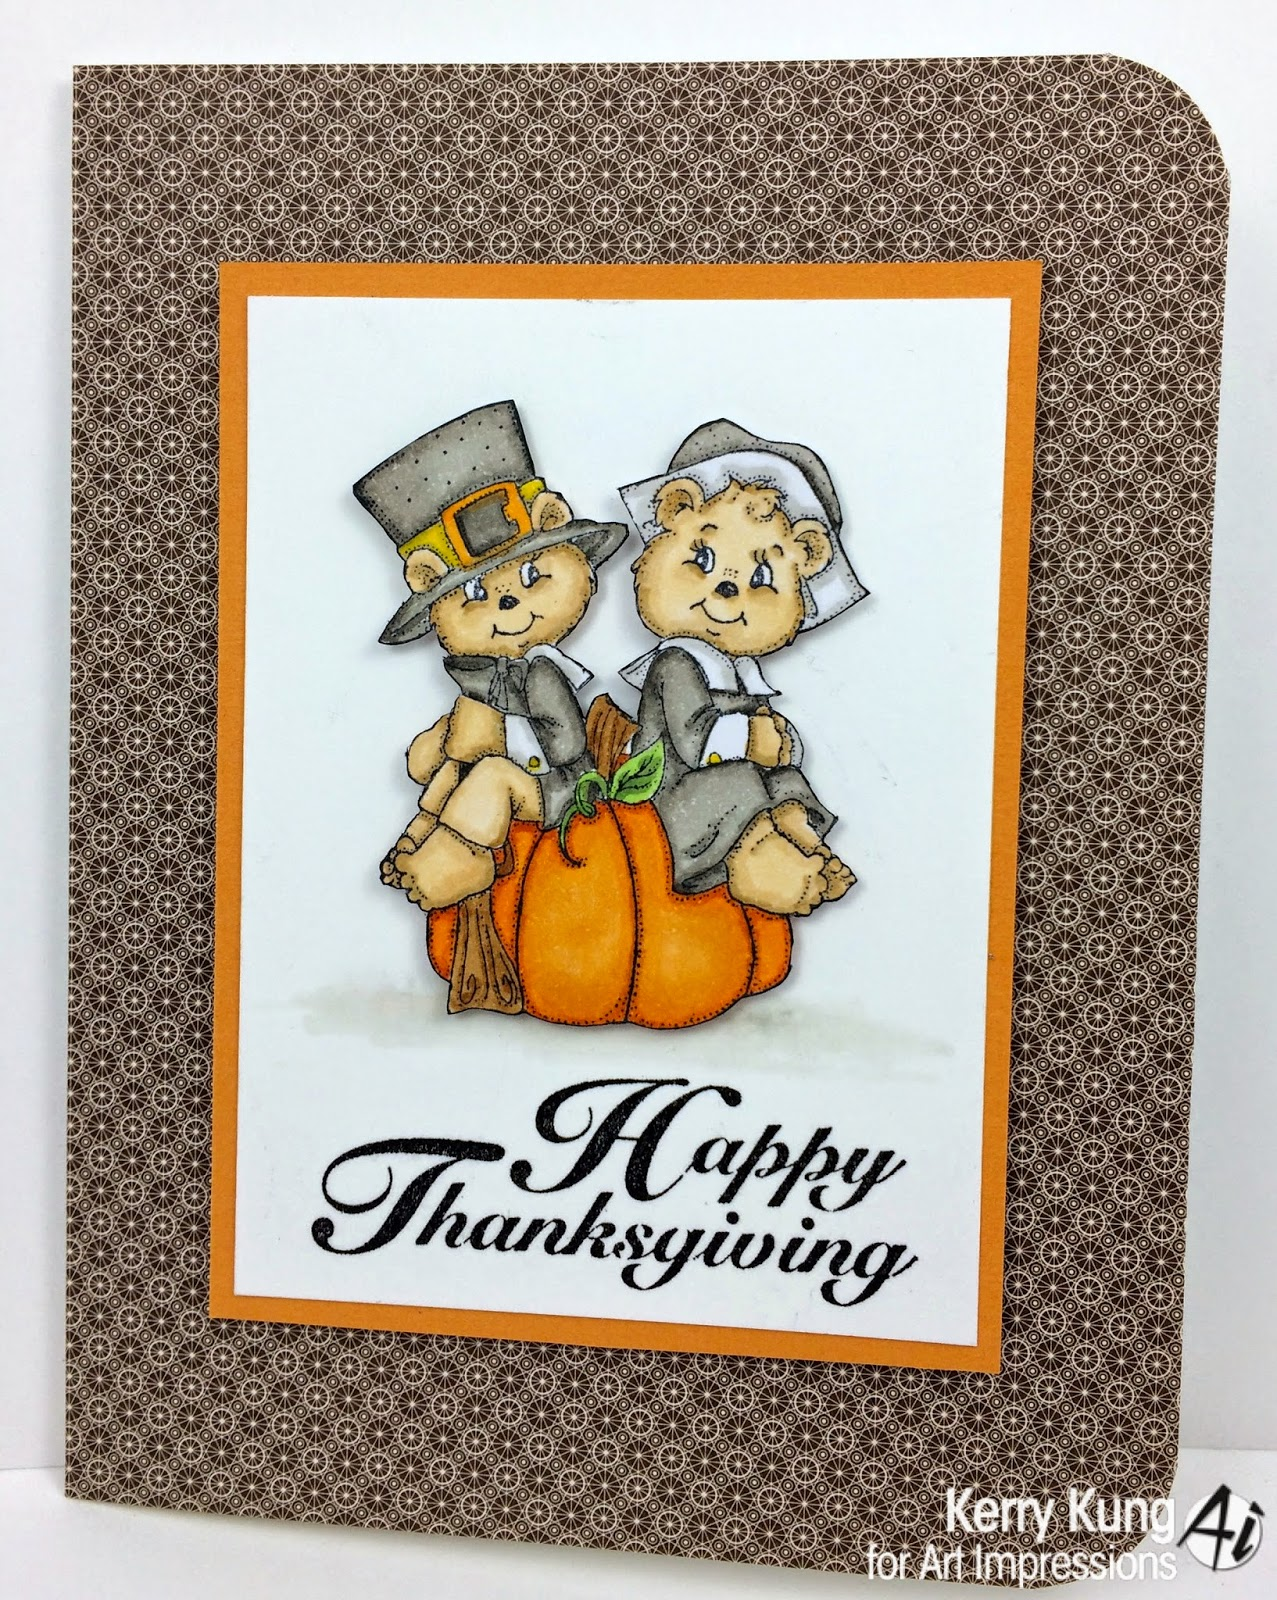 Art Impressions Blog: Happy Thanksgiving From Kerry